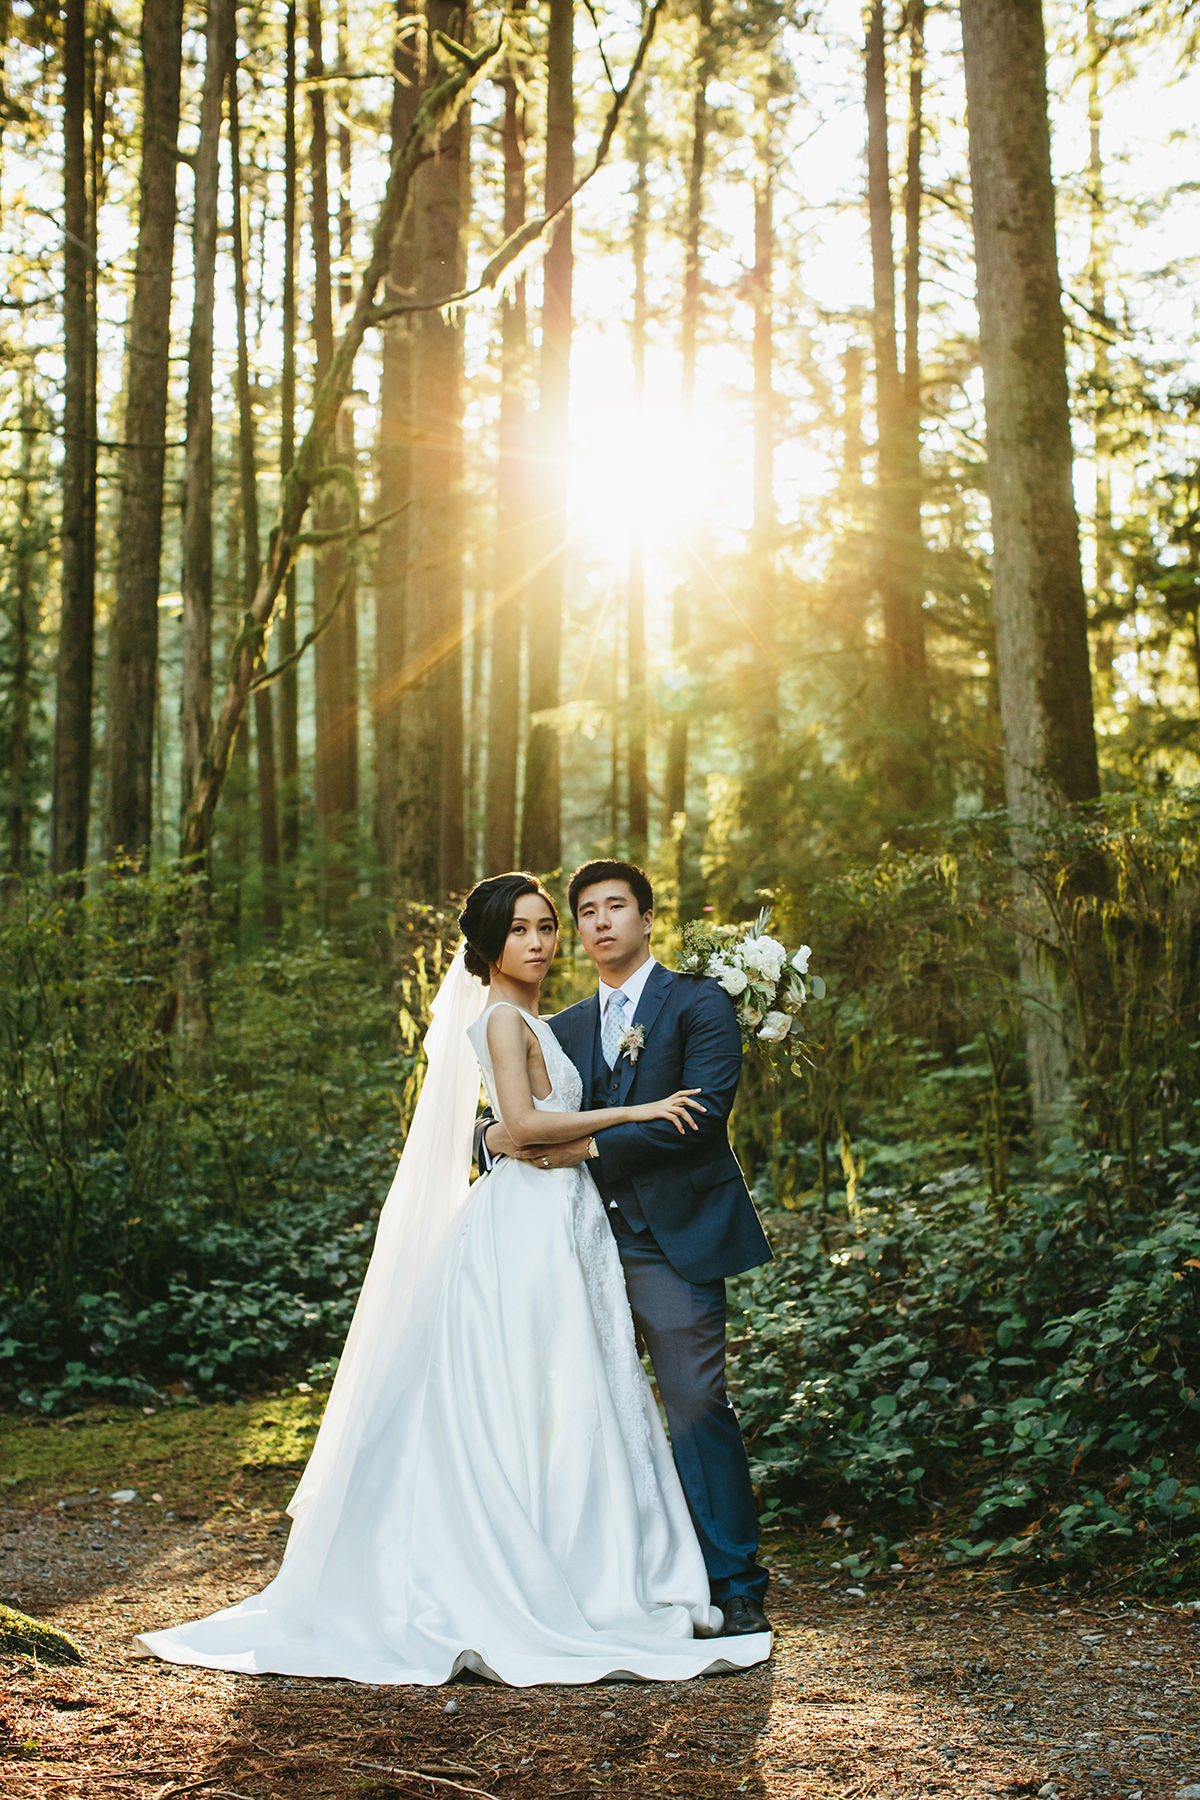 rainforest wedding photos Vancouver www.lucida-photography.com